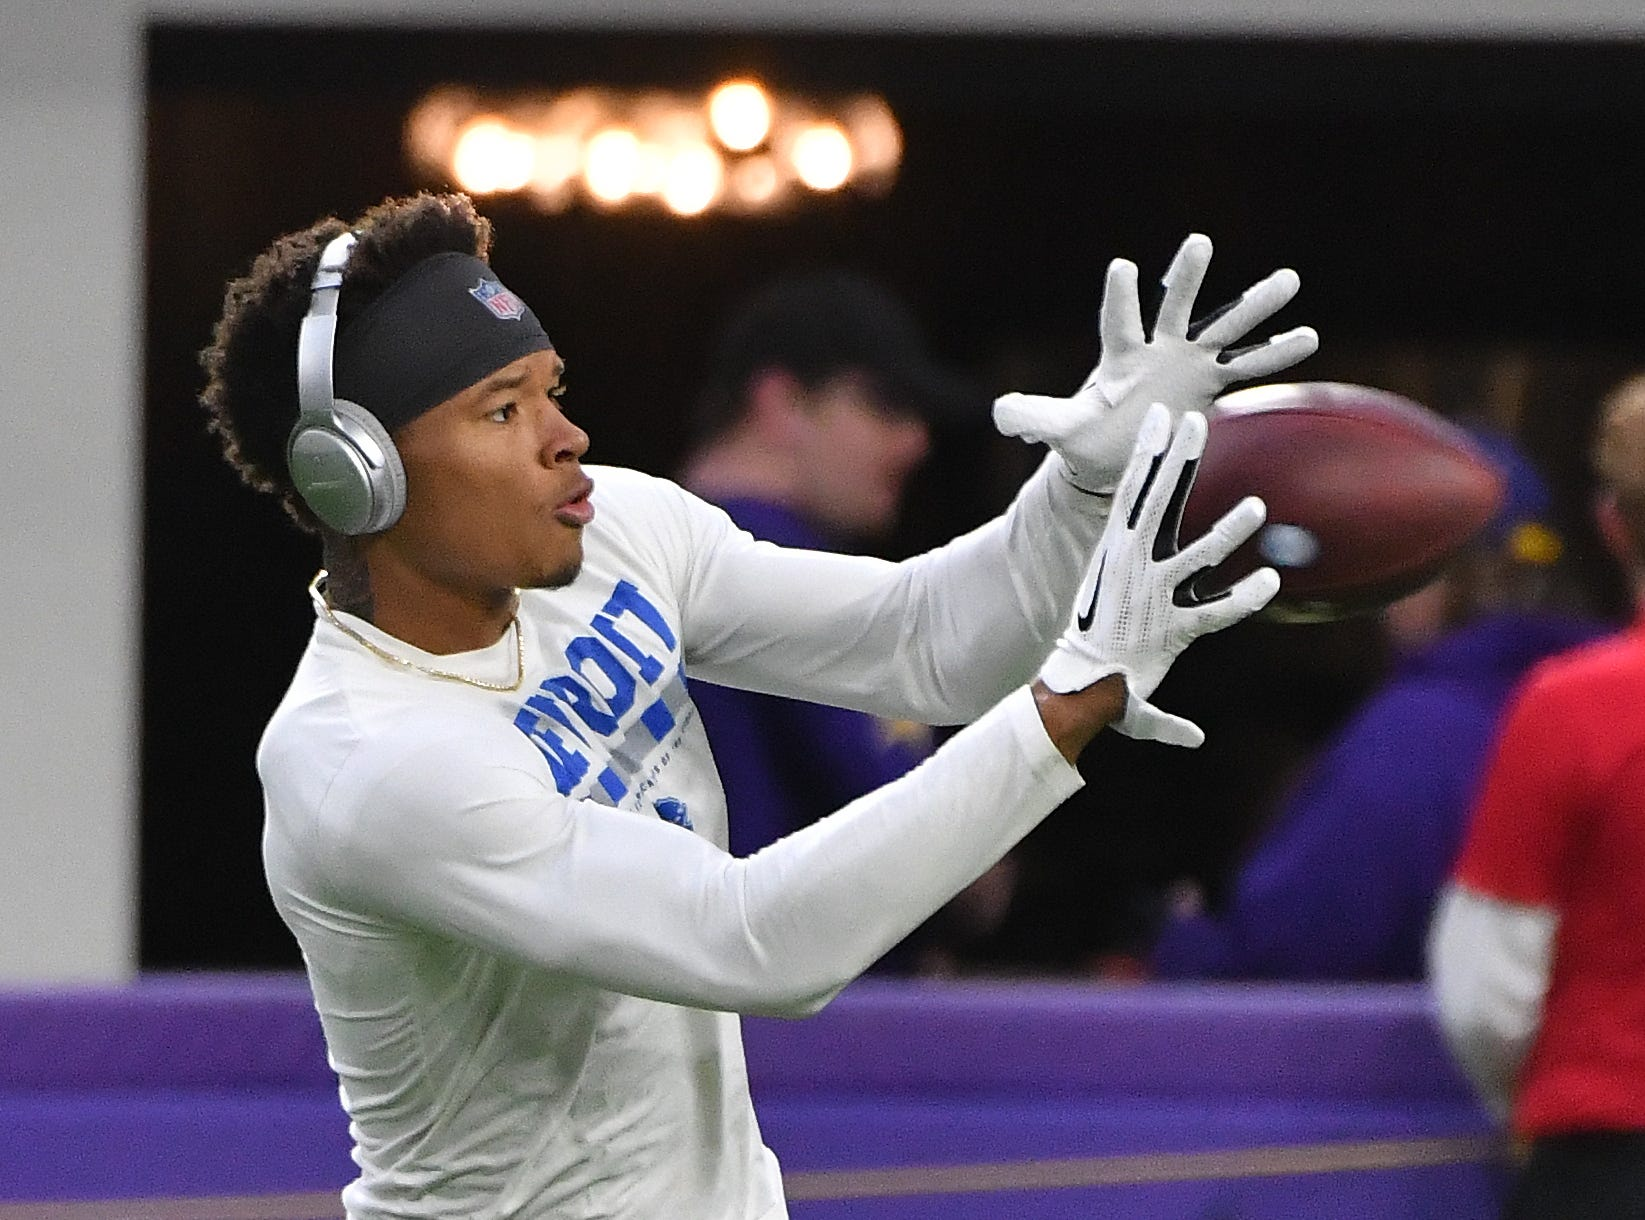 Lions wide receiver Marvin Jones Jr. readies his hands for a reception during warmups.